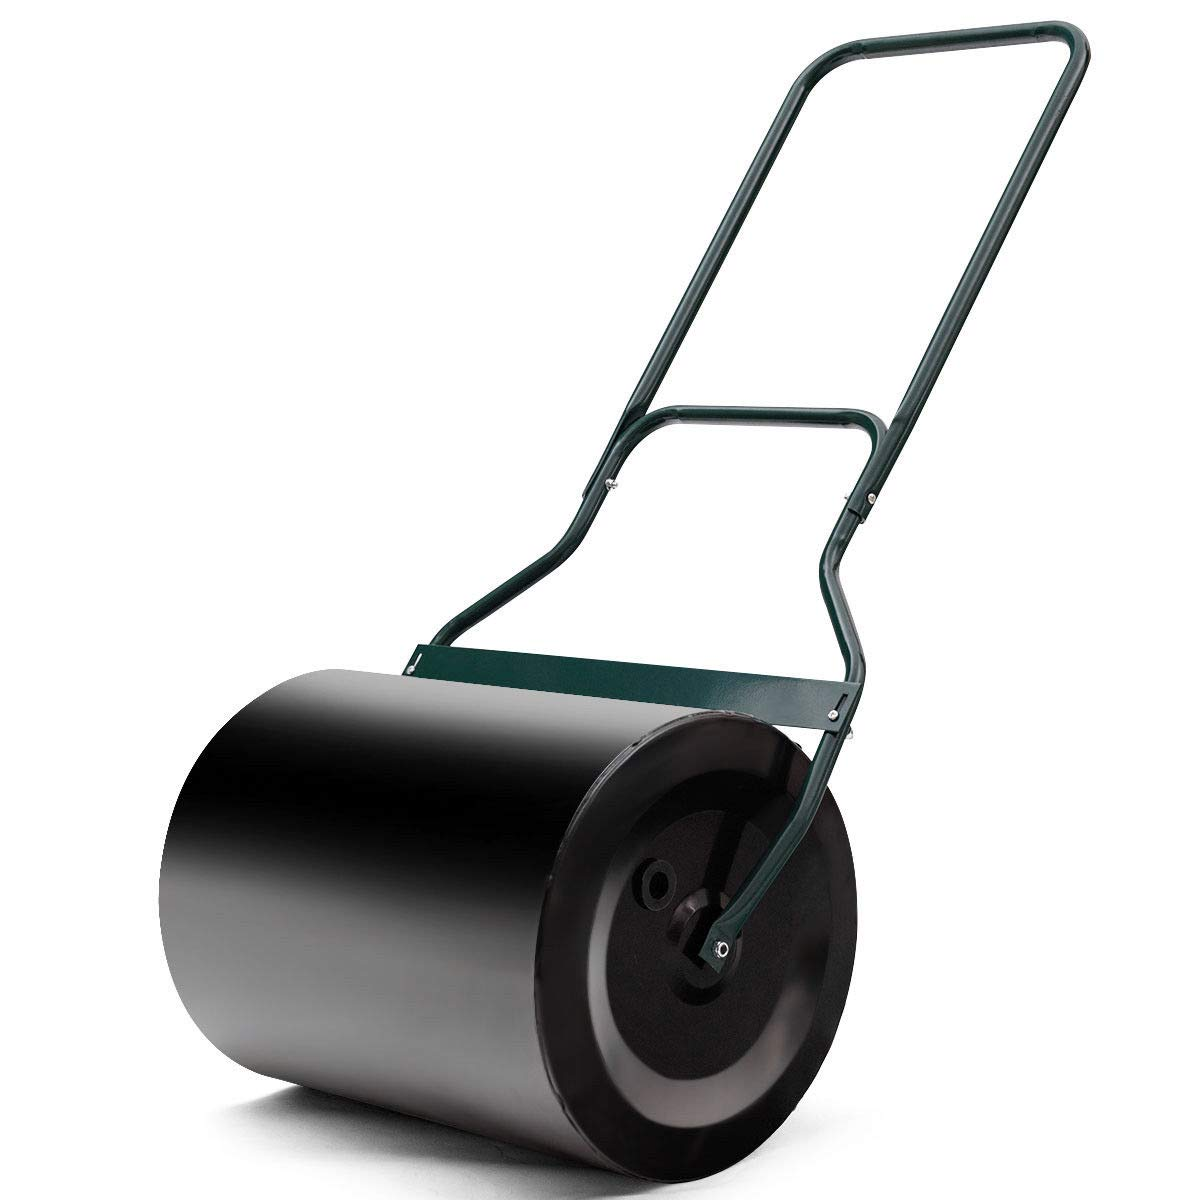 Goplus Poly Push/Tow Lawn Roller Heavy Duty Poly Roller Filled W/Water 16-inch by 19.5-inch